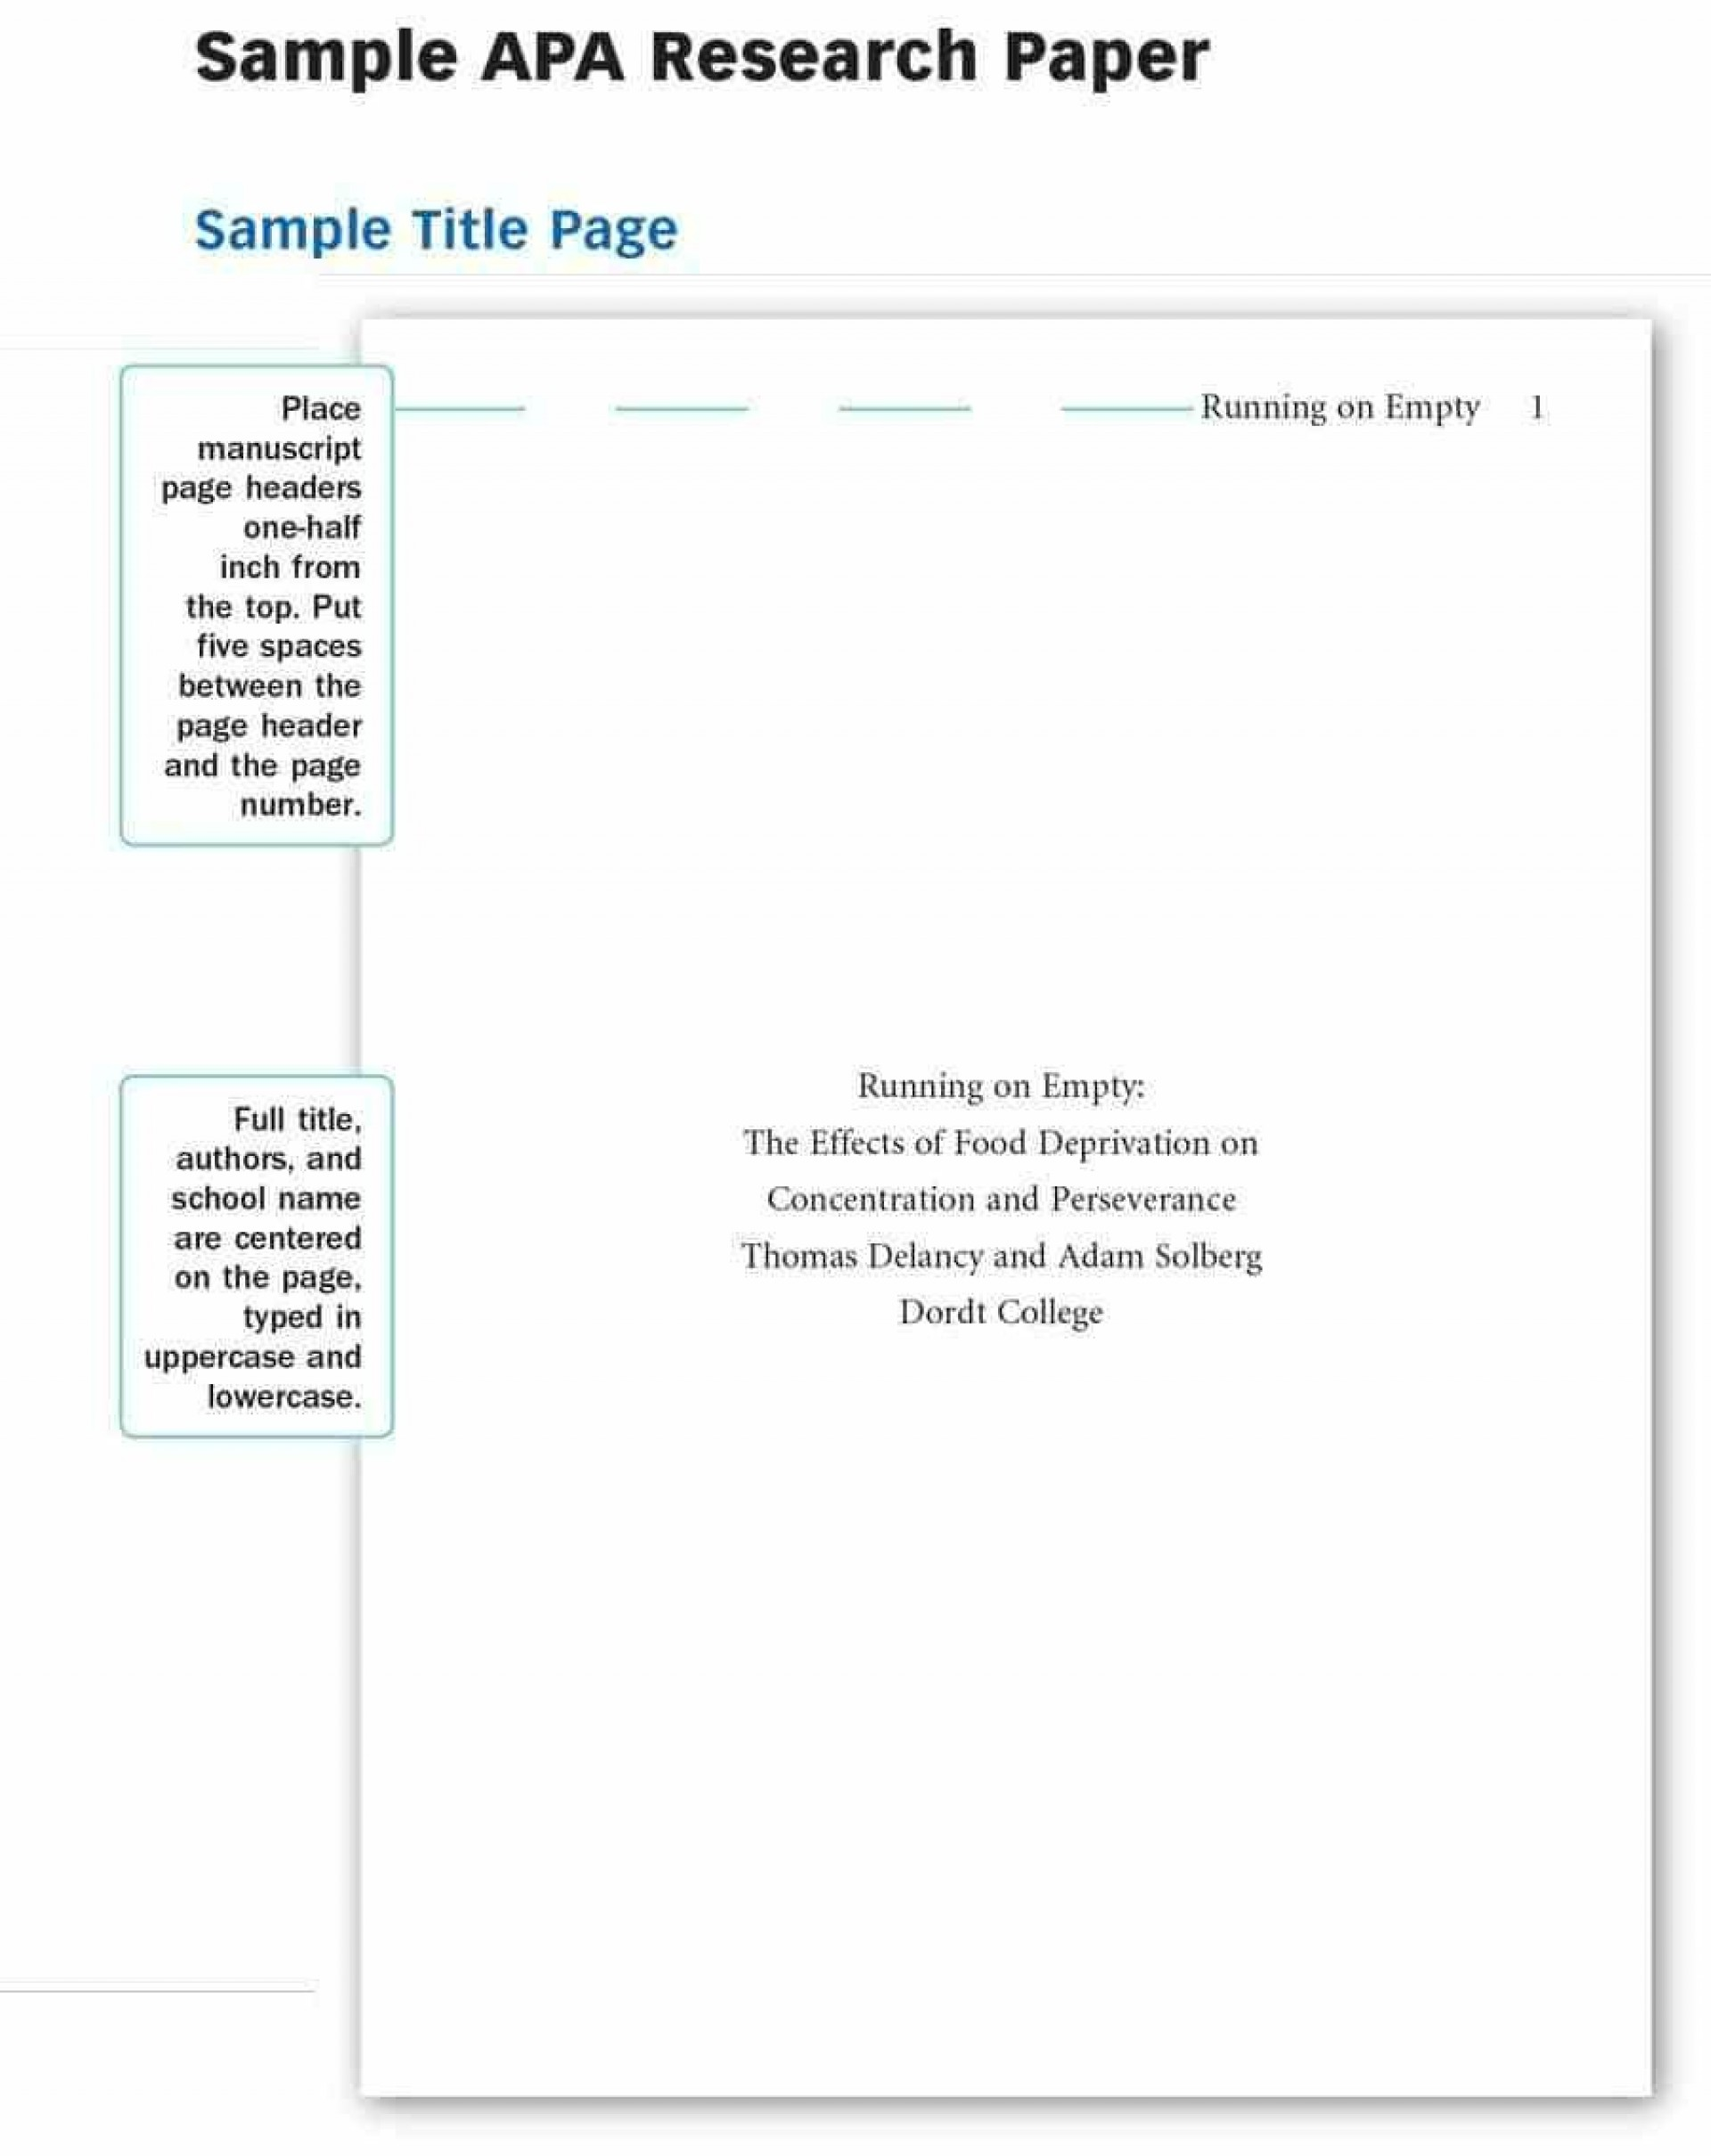 020 Apa Cover Page Template Best Of Style Art Resume Examples Research Papermat Outlin Jpg Fit Astounding Format For Paper Title Layout A Example 1920